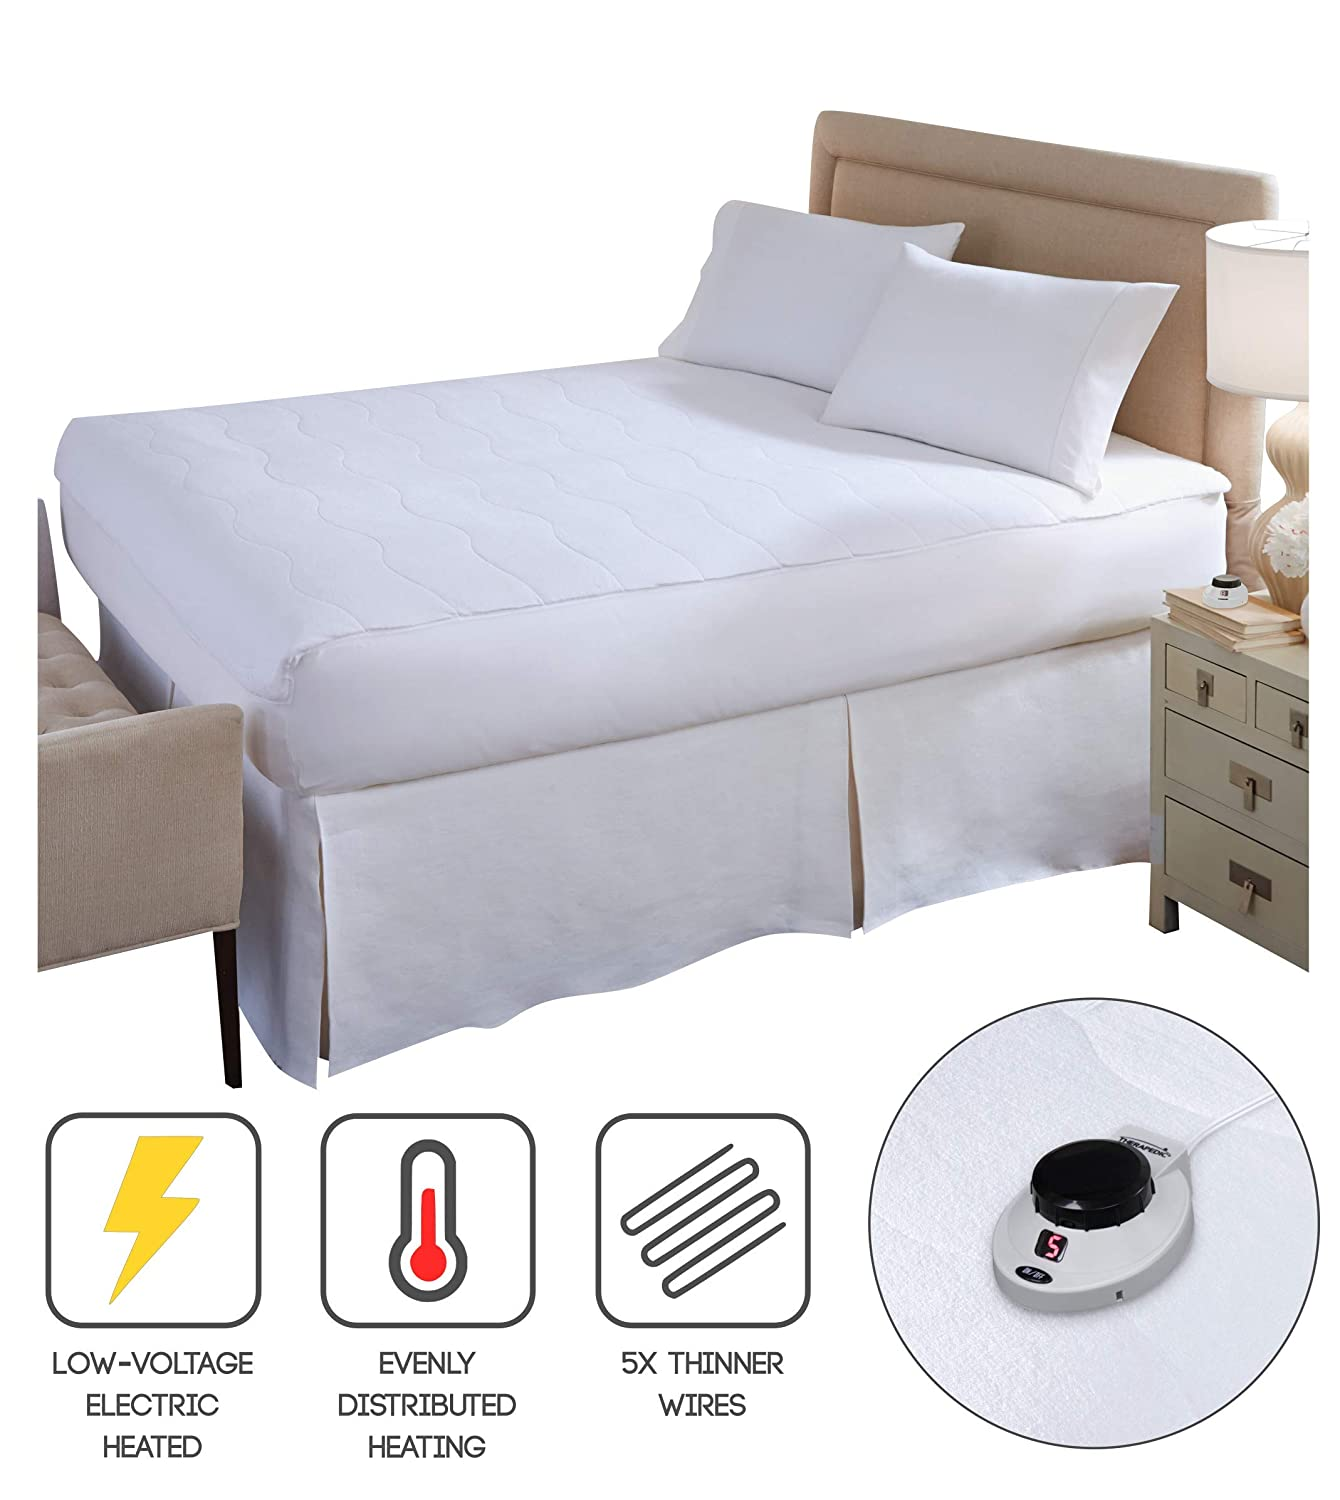 Perfect Fit SoftHeat Smart Heated Electric Mattress Pad with Safe & Warm Low Voltage Technology, Micro-Plush Top